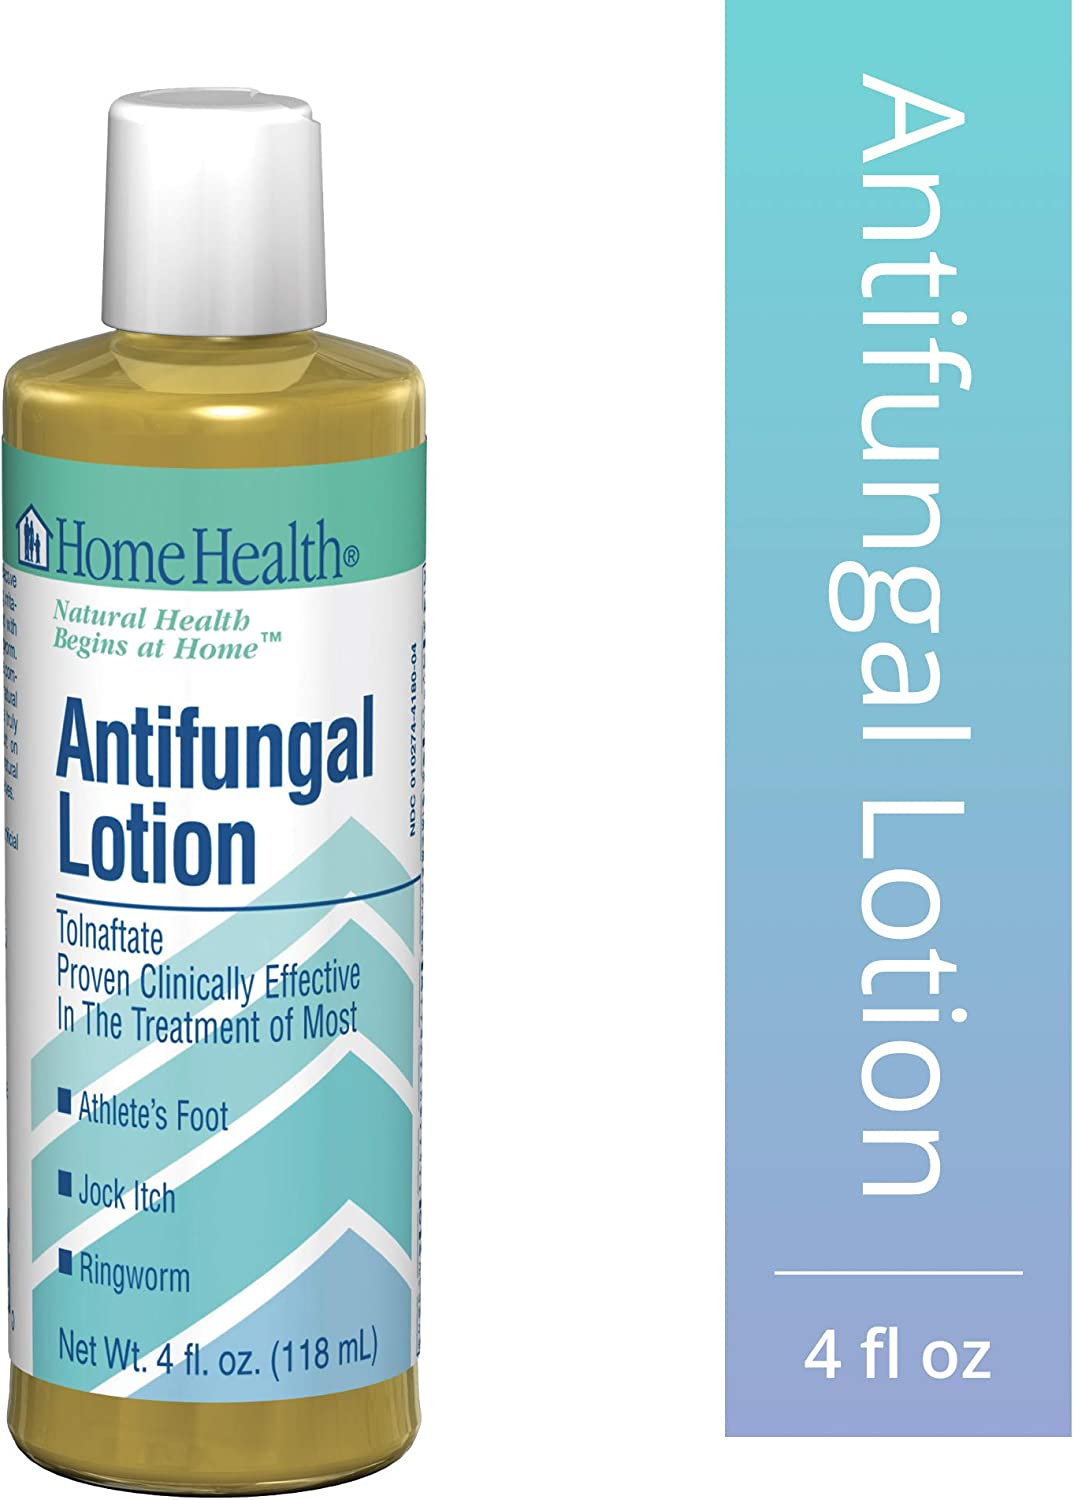 Home Health Antifungal Lotion - 1% Tolnaftate, 4 fl oz - Effective Relief from Itching, Burning & Cracking Associated with Athletes Foot, Jock Itch & Ringworm - Non-GMO, Paraben-Free, Vegetarian